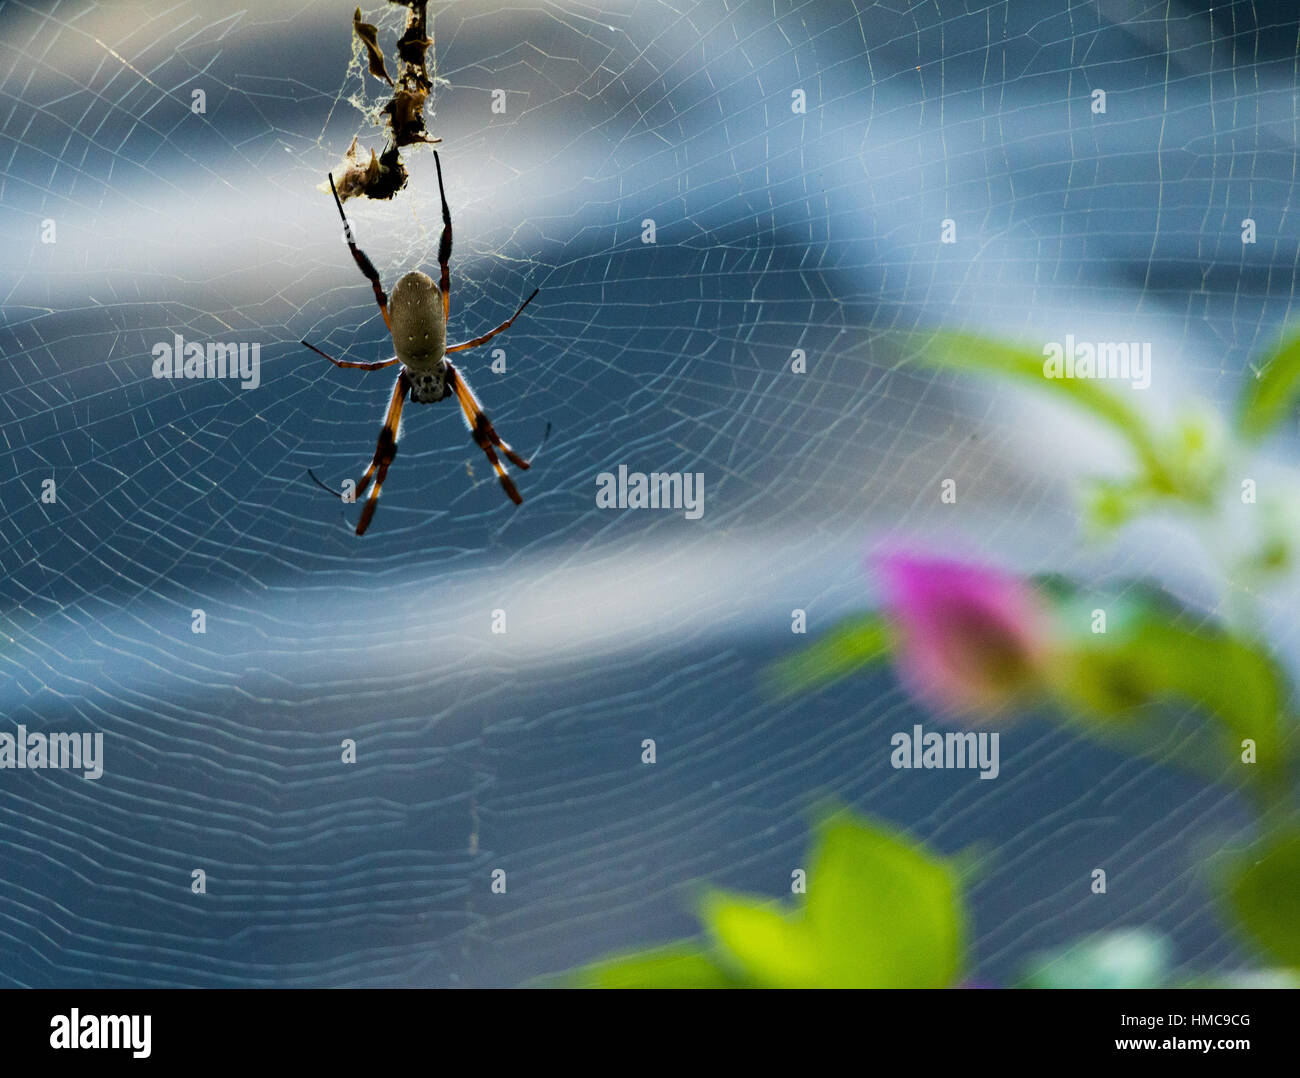 Orb Spider in Web - Stock Image